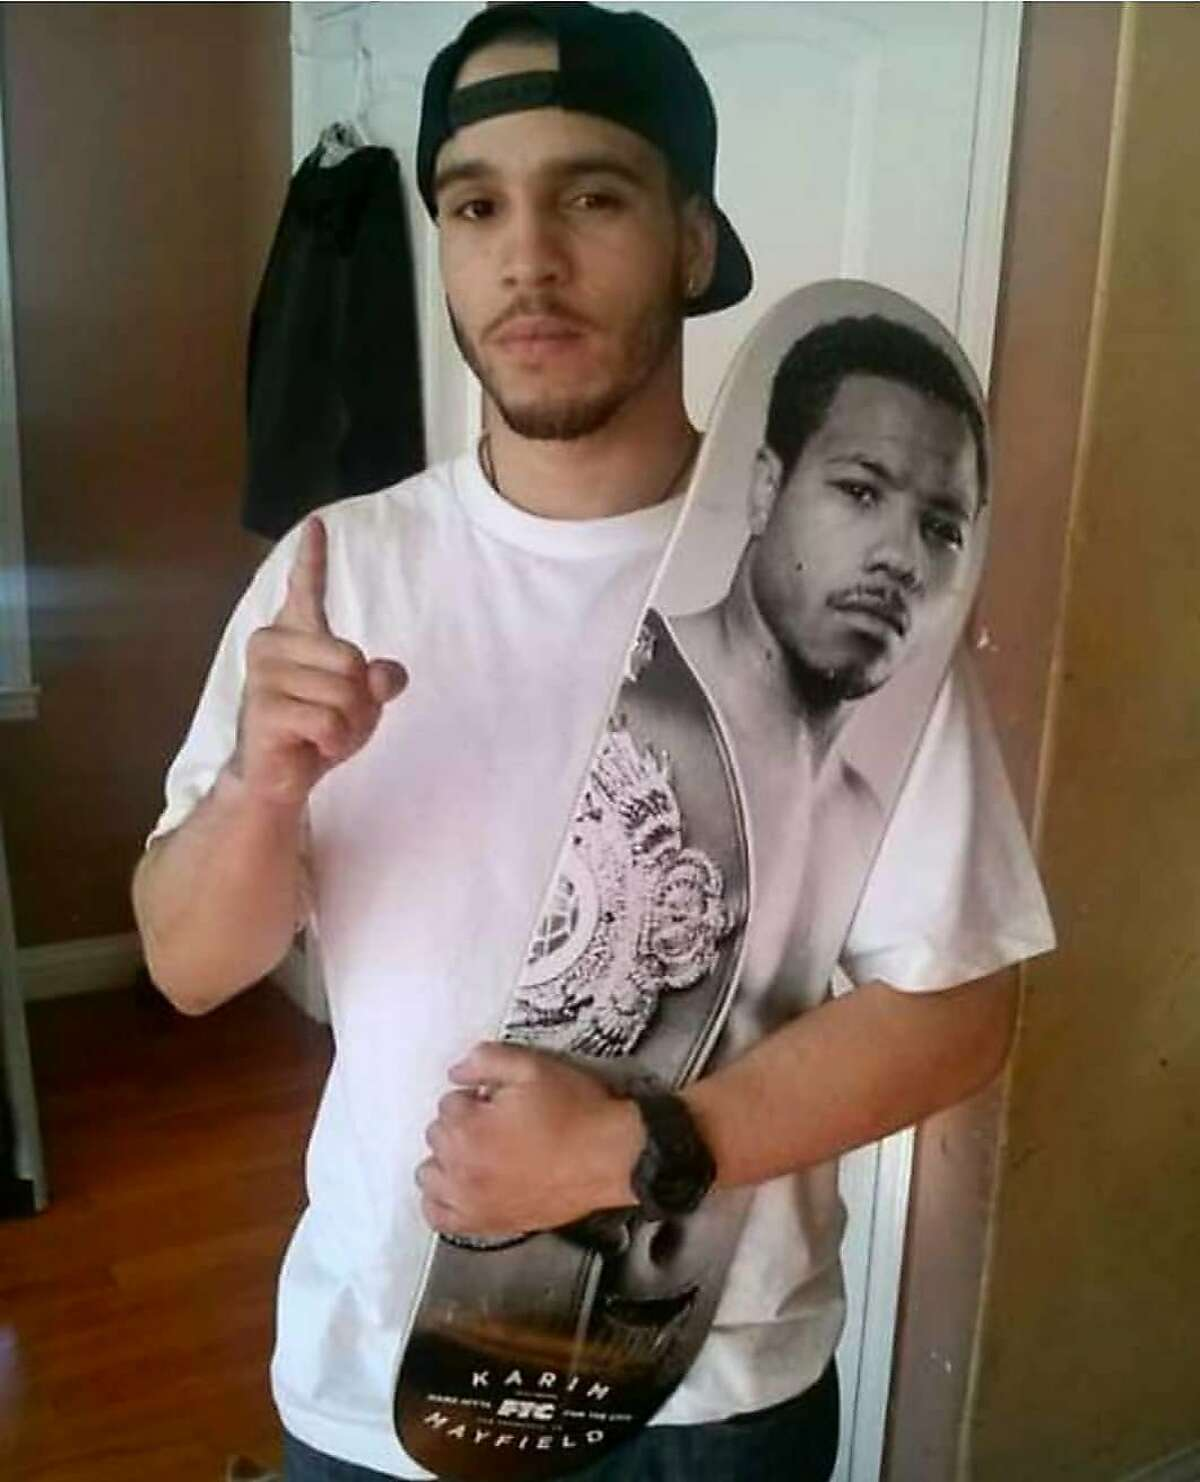 Sahleem Tindle, brother of boxer Karim Mayfield, holds a skateboard with his brother's likeness. Sahleem Tindle was shot and killed by a BART police officer in Oakland back on Jan. 3, 2018. Courtesy Karim Mayfield